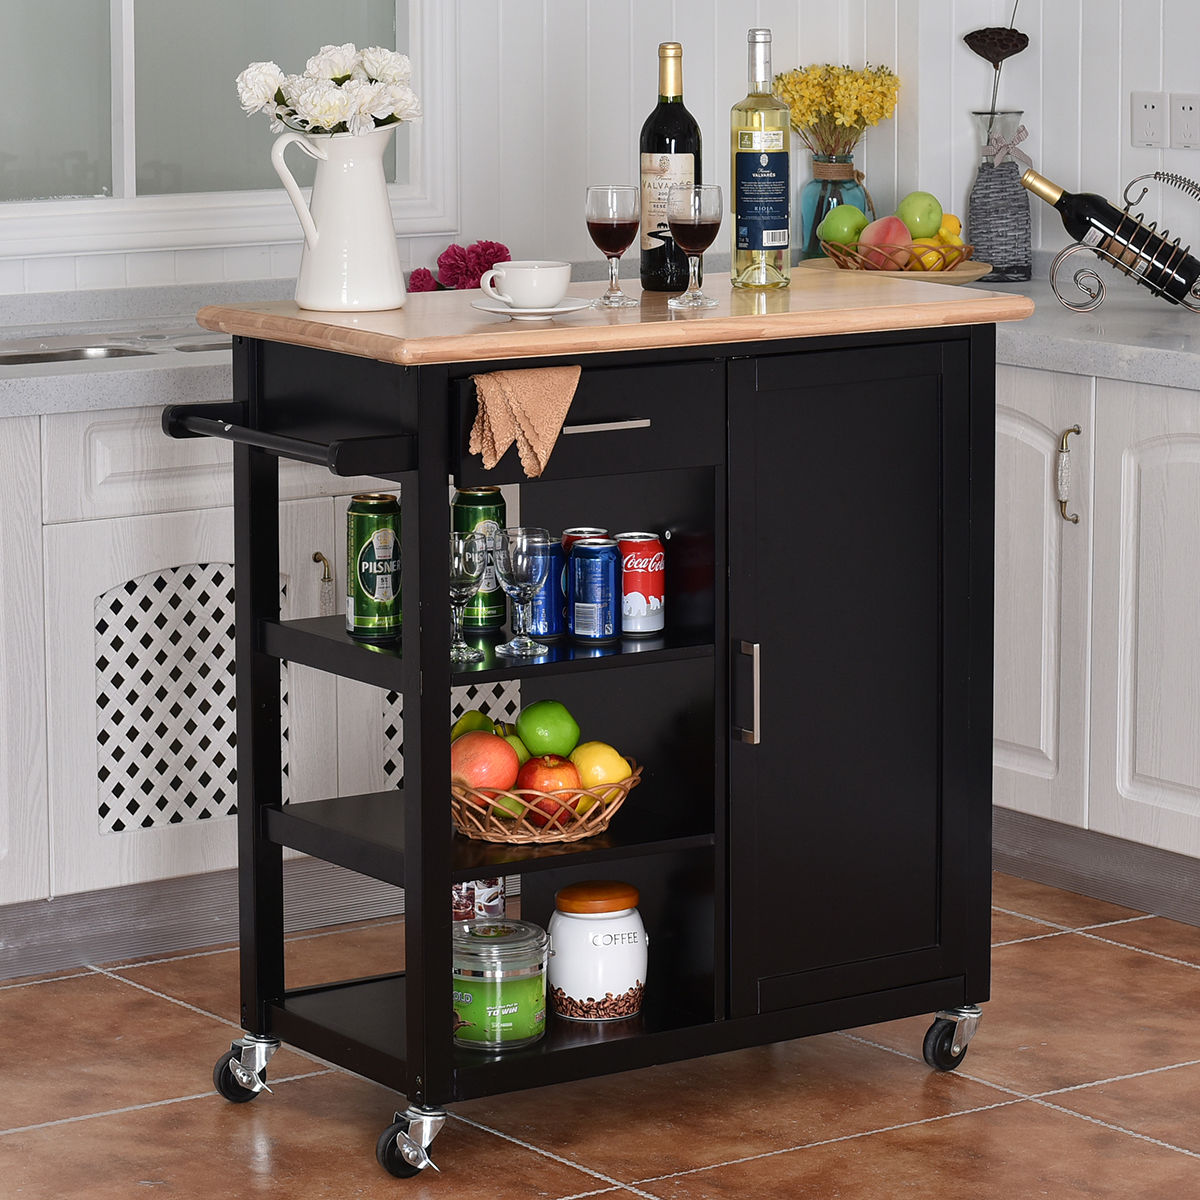 Amazing Costway 4 Tier Rolling Wood Kitchen Trolley Cart Island Storage Cabinet  Shelf Drawer